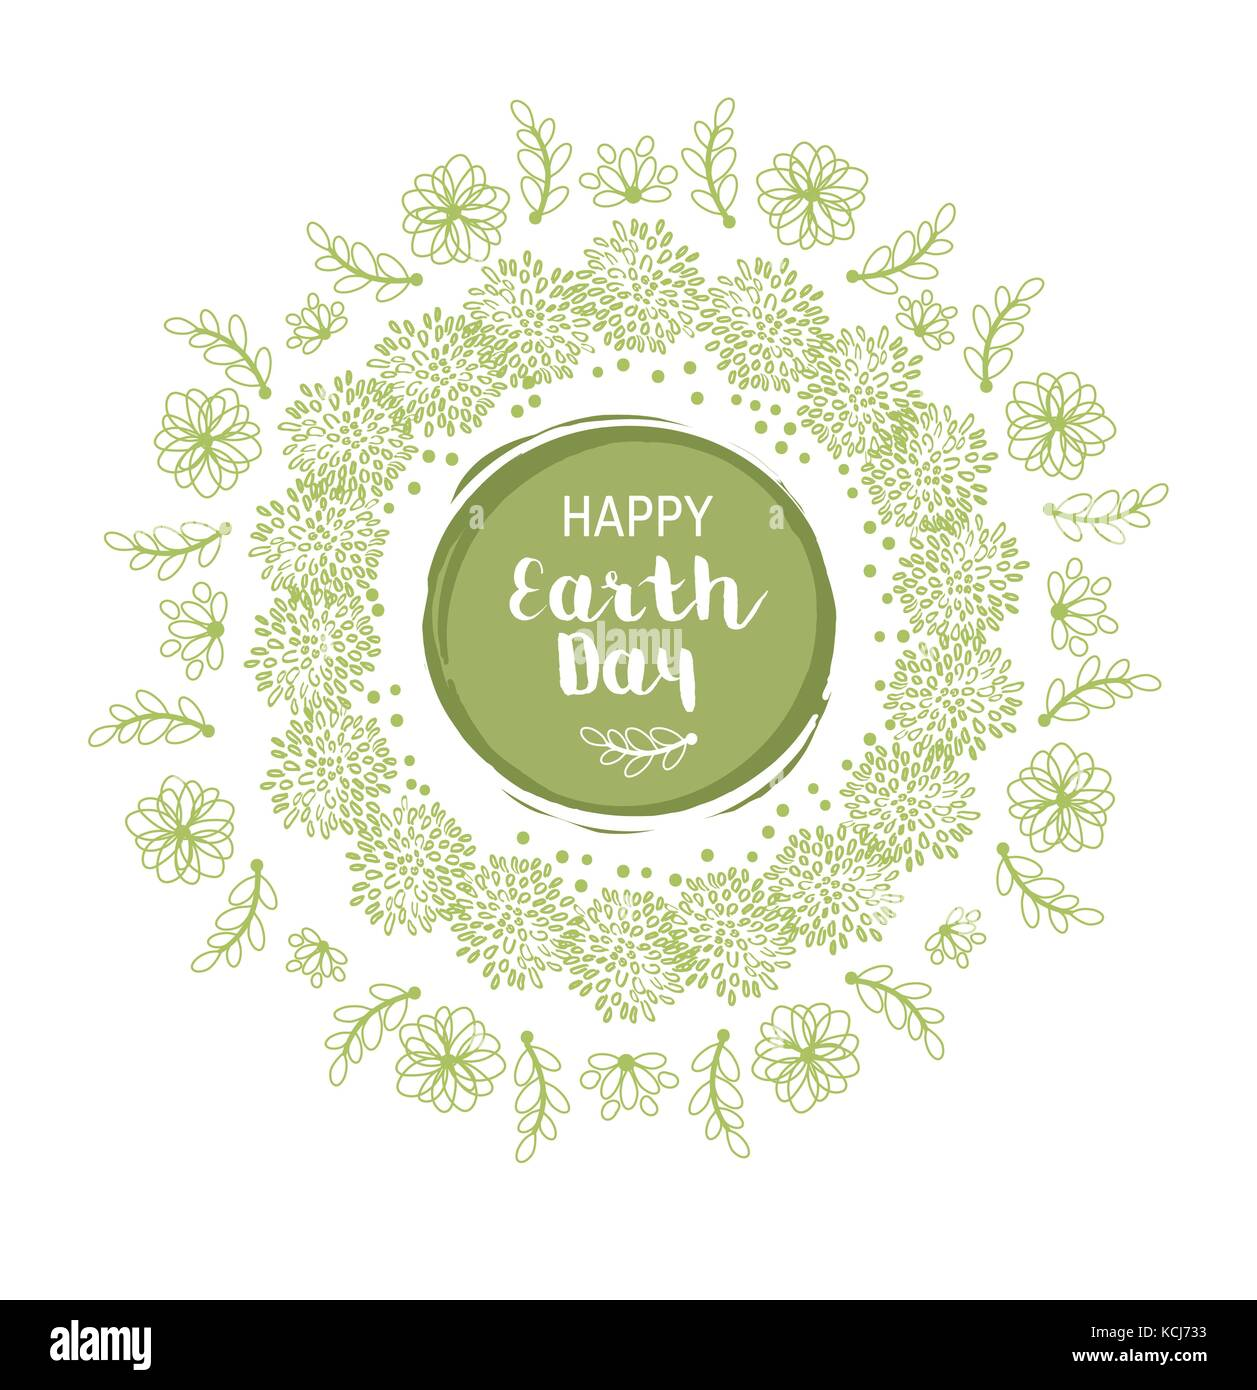 Happy Earth day illustration - Stock Image